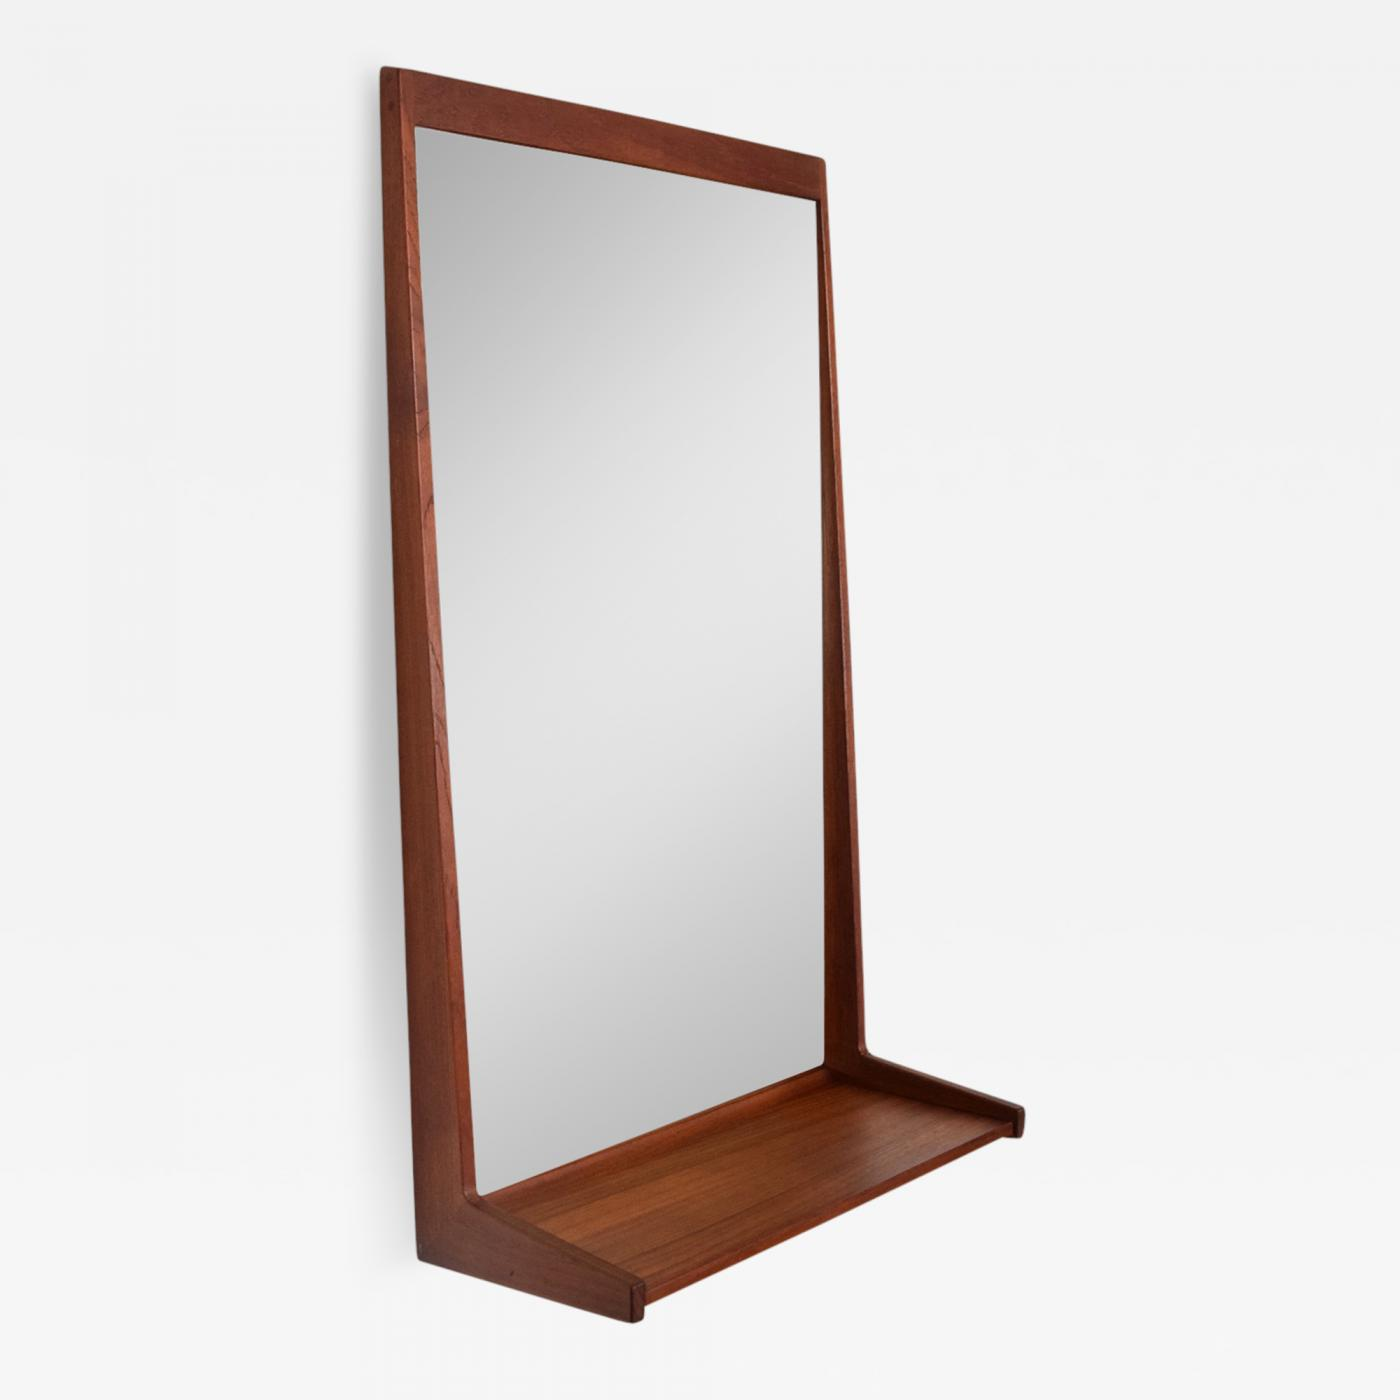 Listings furniture mirrors wall mirrors · mid century